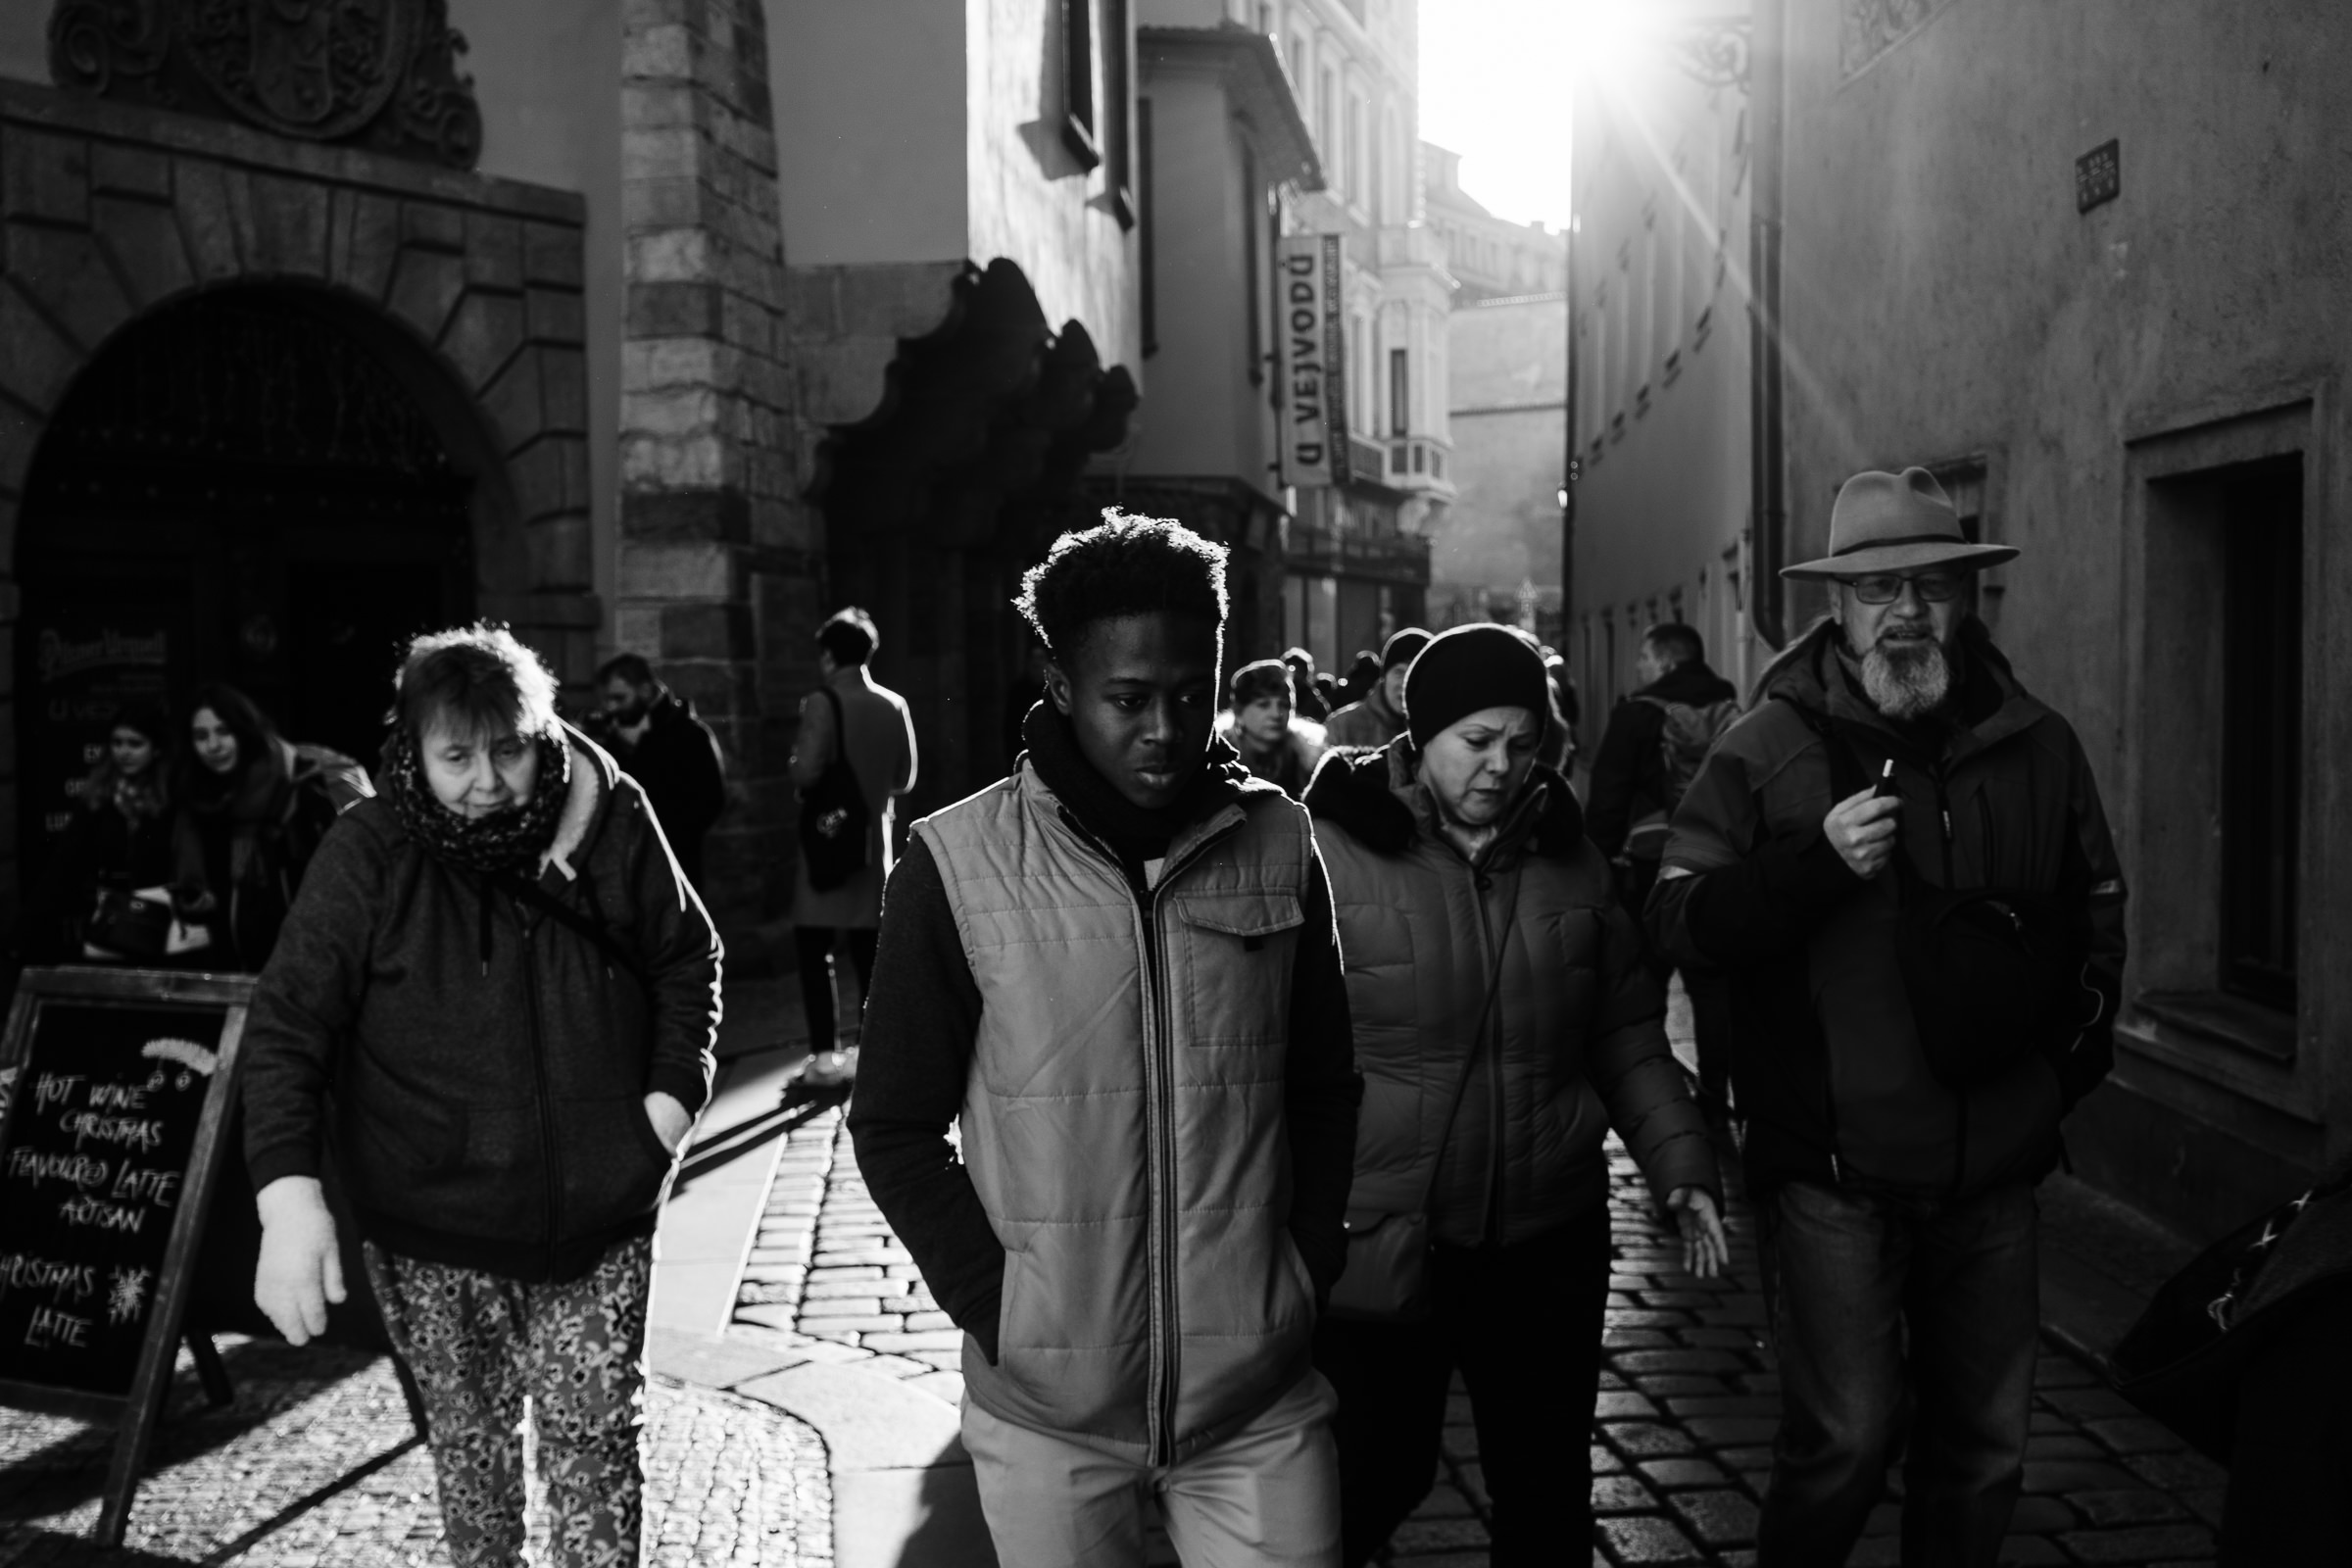 People walking in Prague and i make this photographs